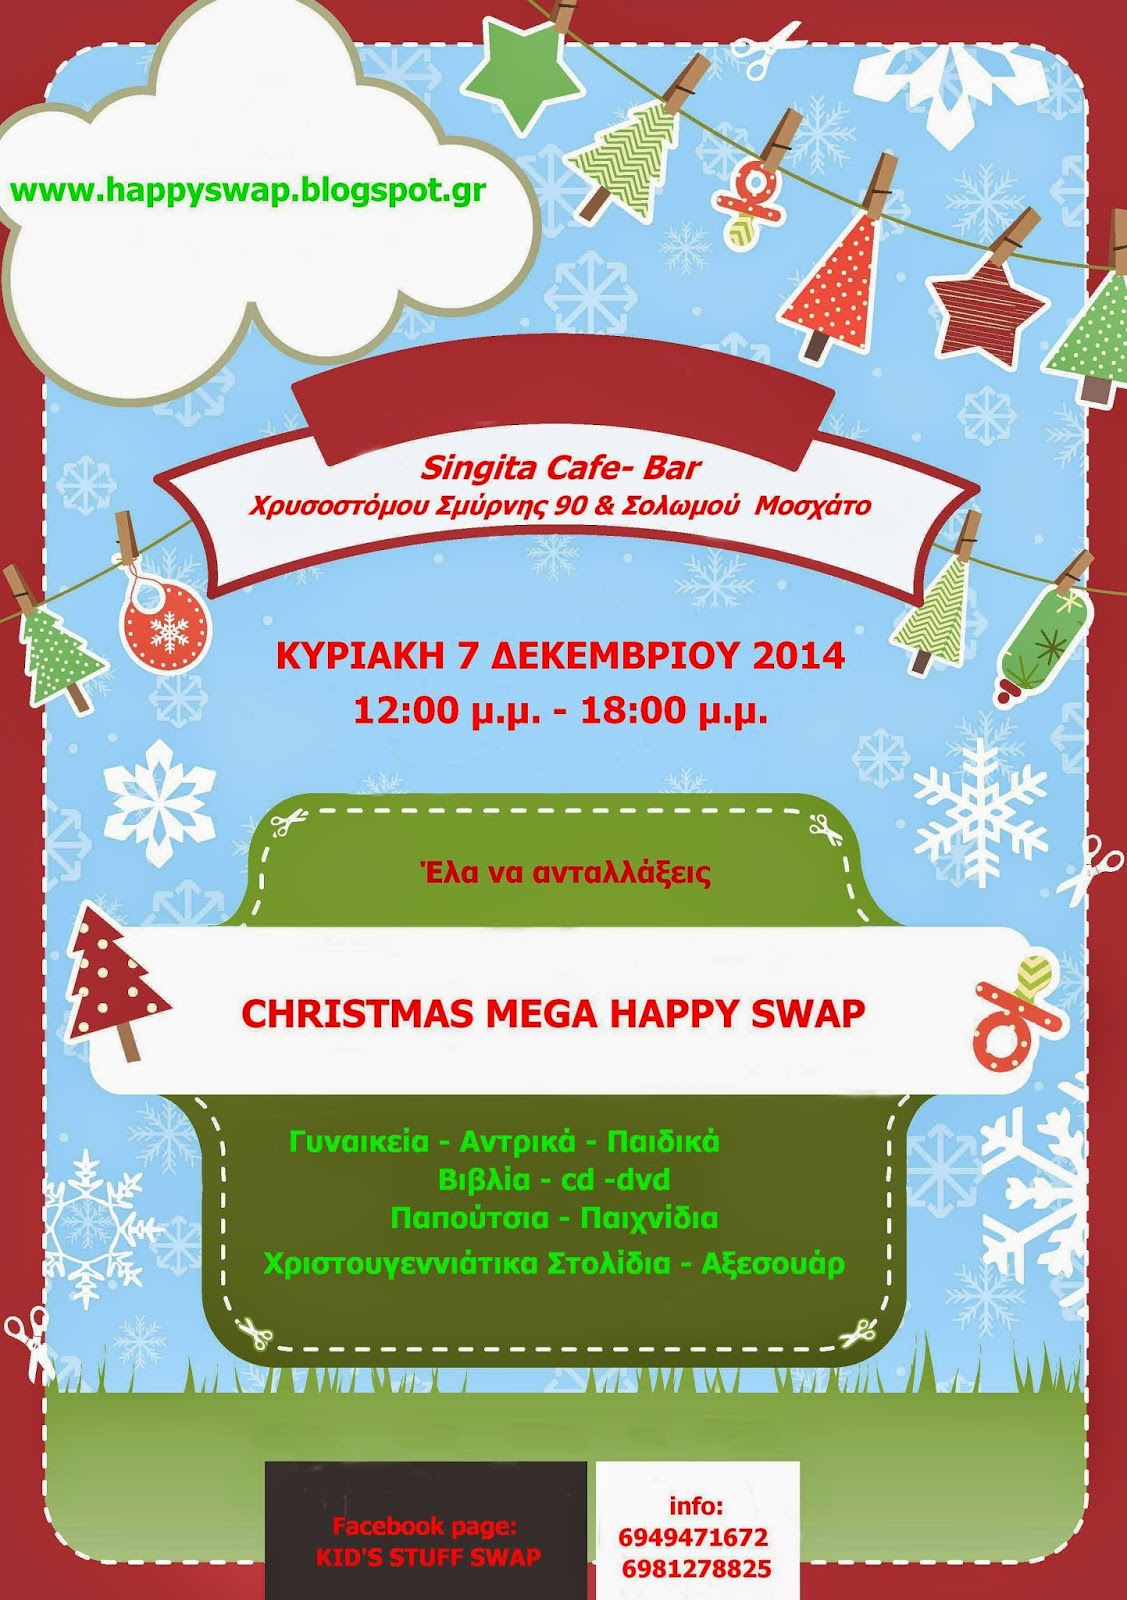 dafbfd8e51b1 Christmas Mega Happy Swap 7 Δεκεμβρίου 2014